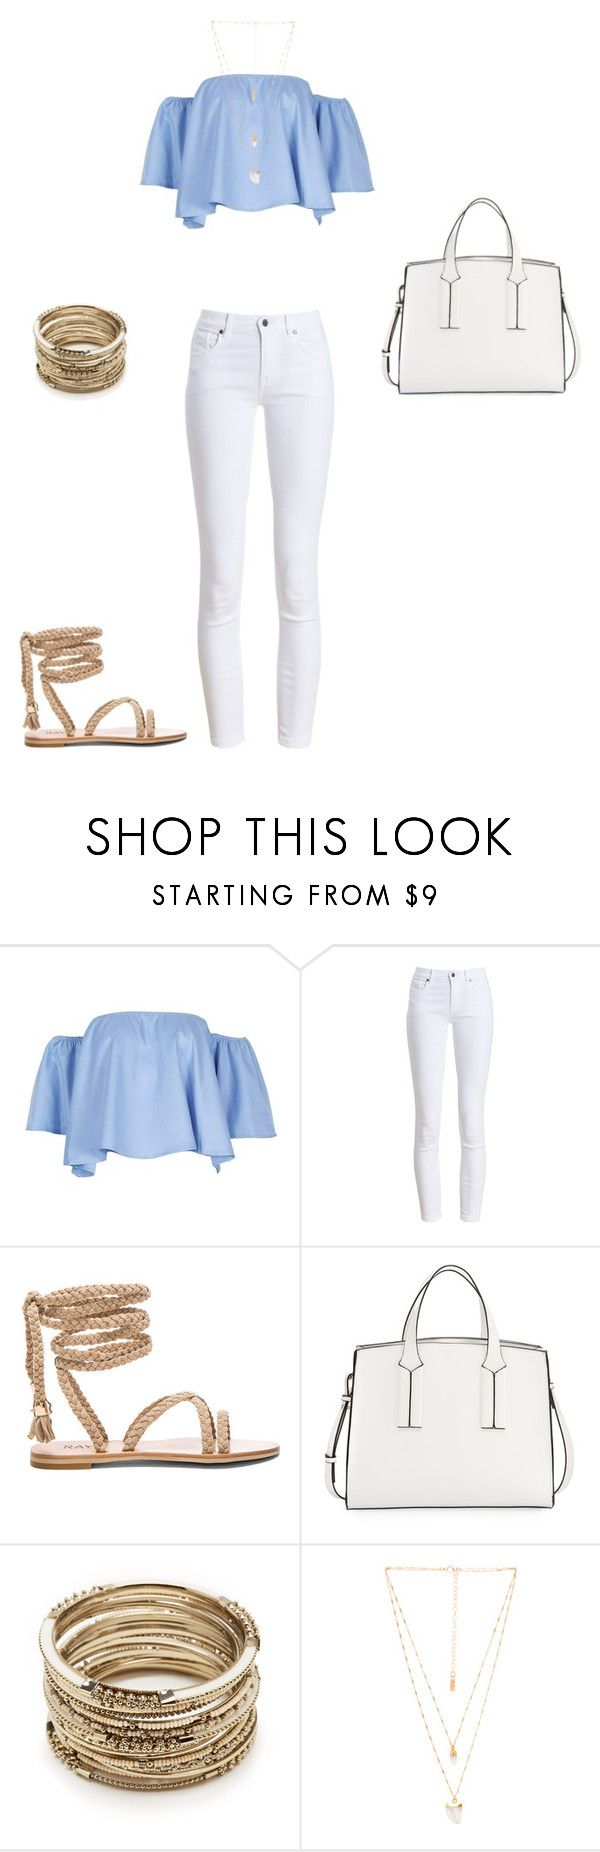 """""""Sunday church outfit"""" by dancingqueenstar ❤ liked on Polyvore featuring Barbour, French Connection, Sole Society and Natalie B"""